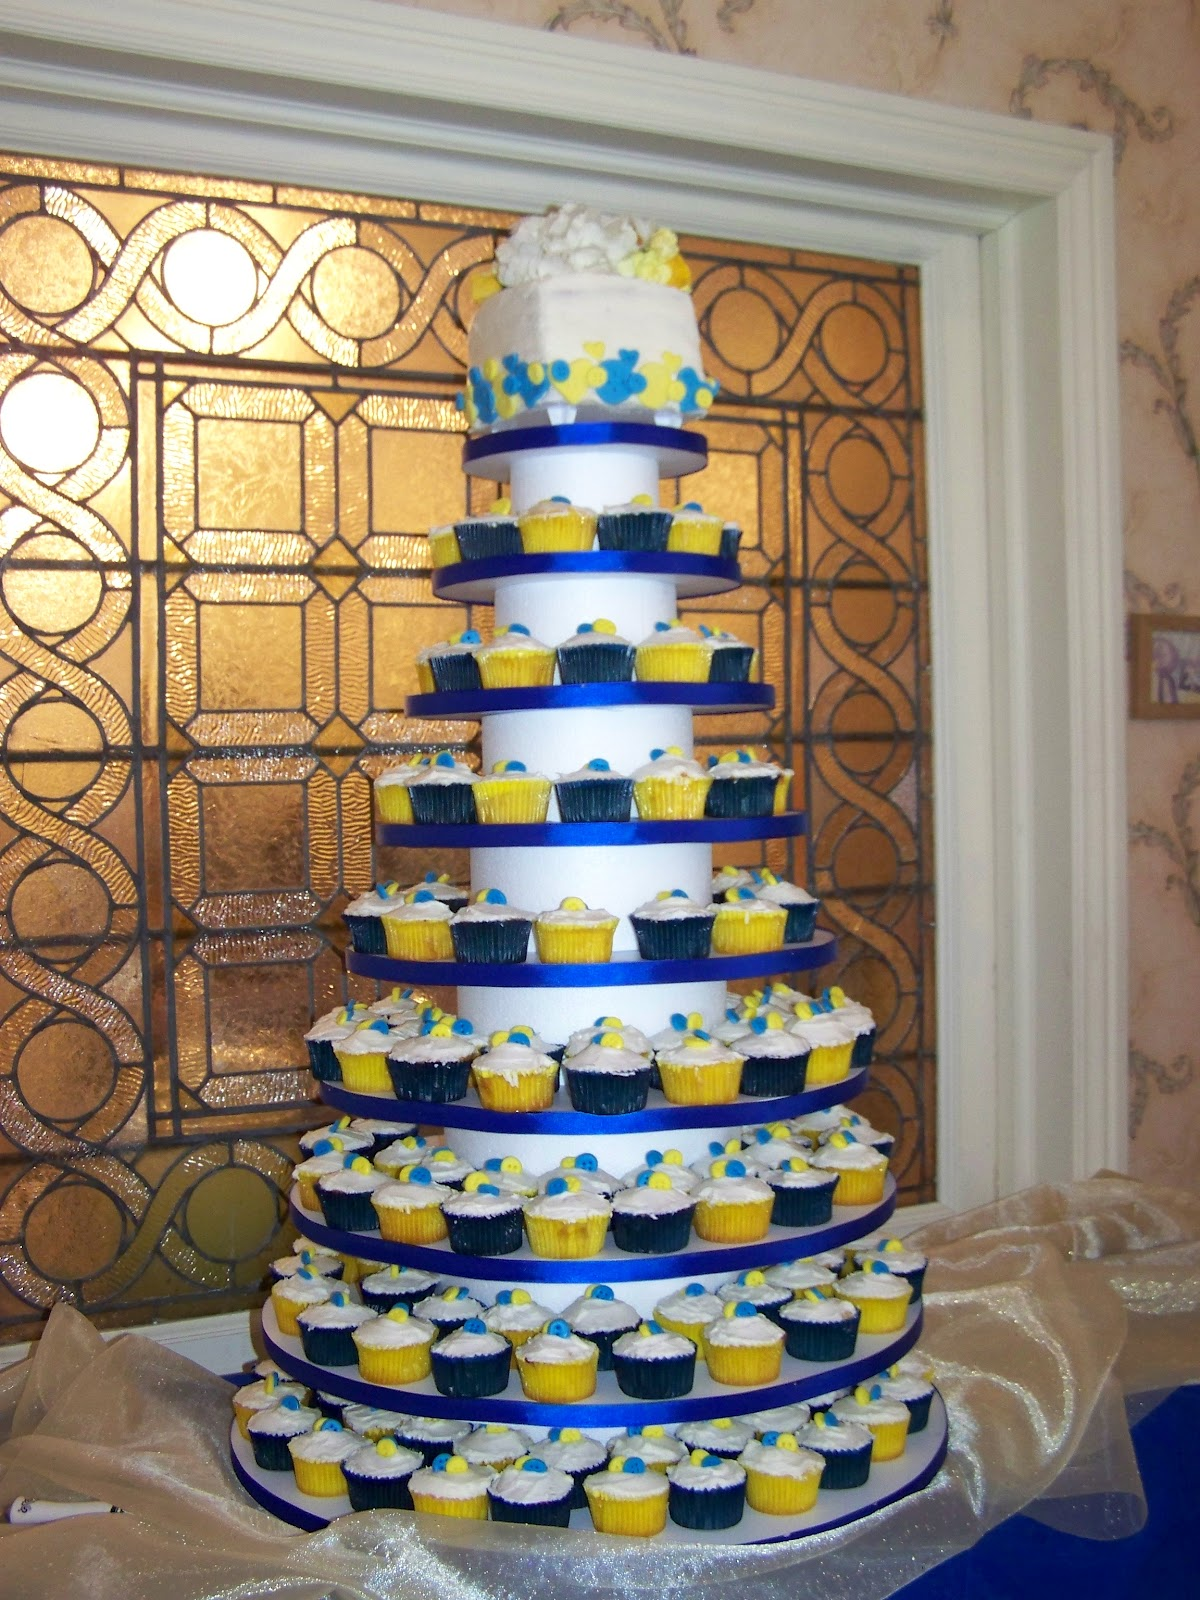 Cake A Licious Royal Blue And Yellow Buttons Wedding Cake